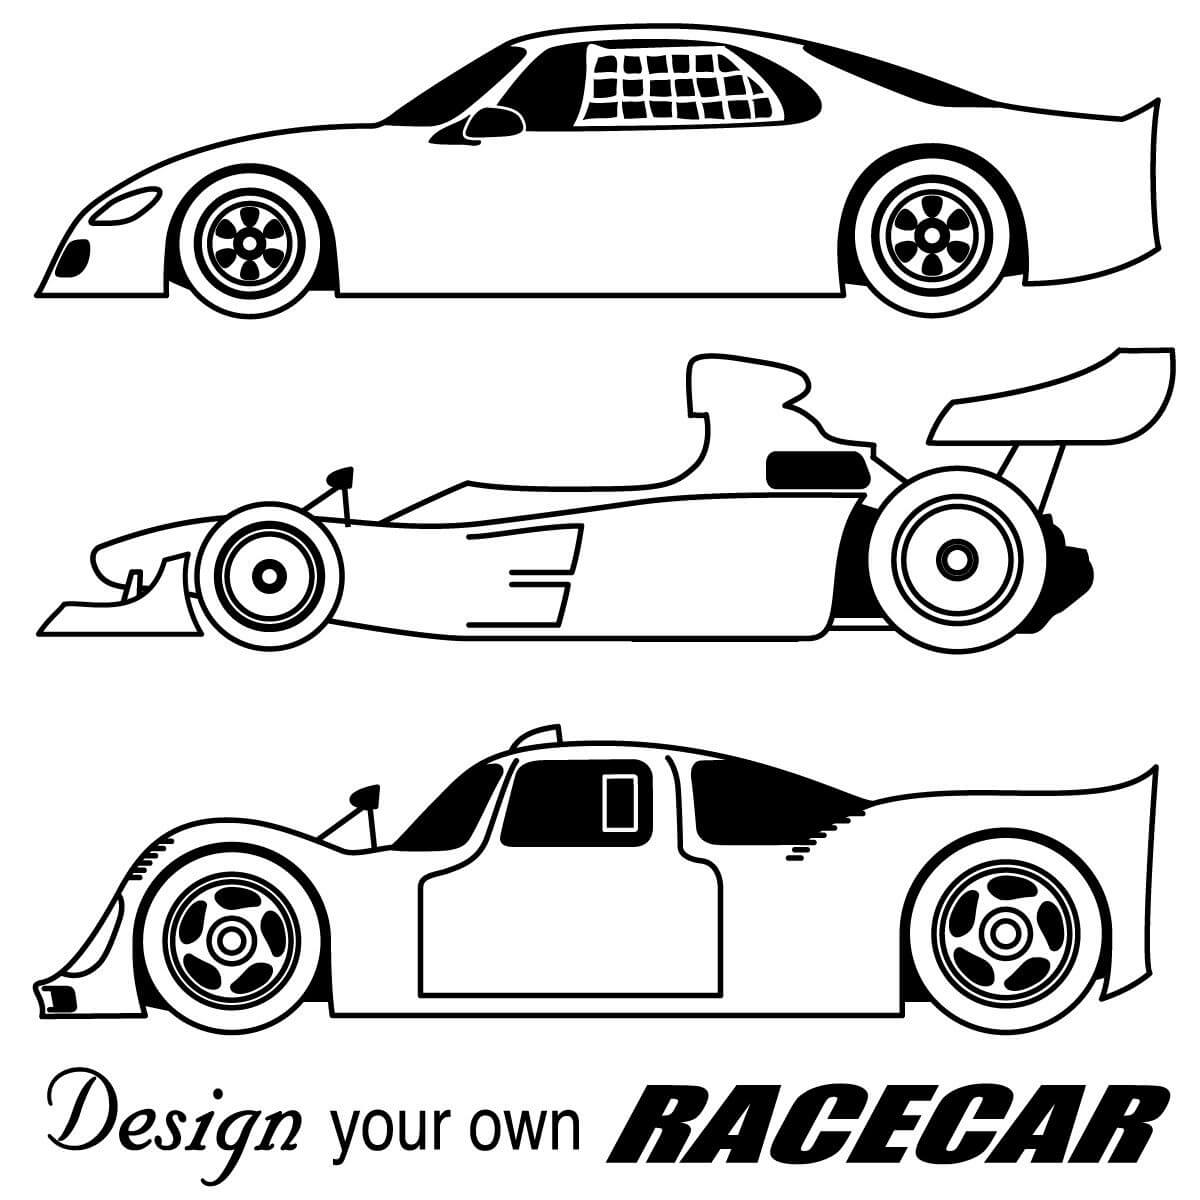 Blank Race Car Coloring Pages With Regard To Blank Race Car Templates